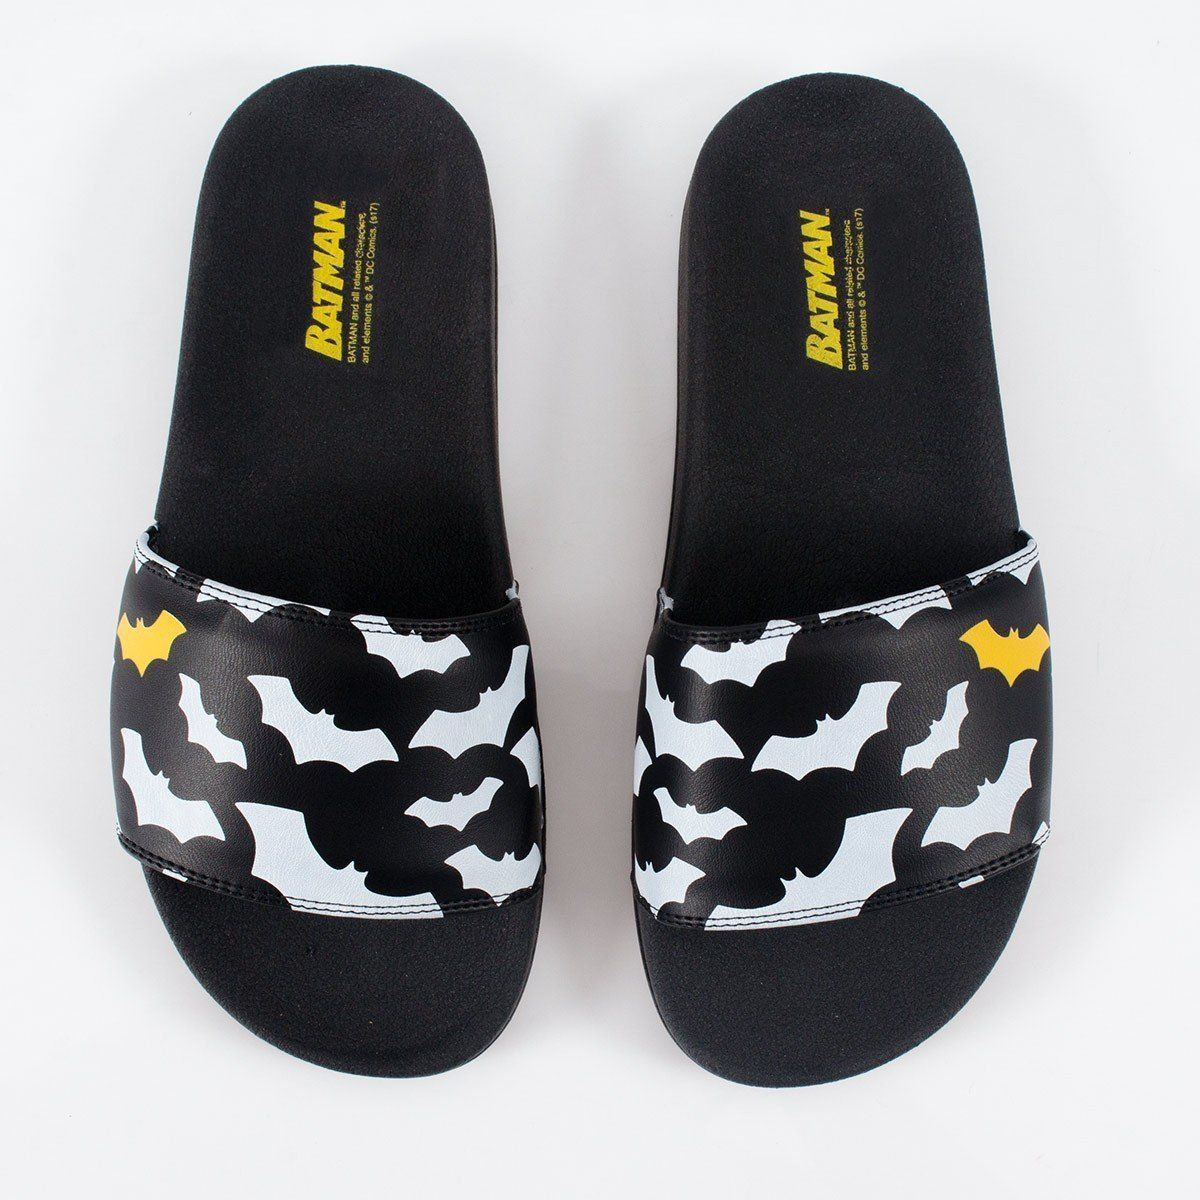 Chinelo Slide DC Comics Batman Bats  - bandUP Store Marketplace